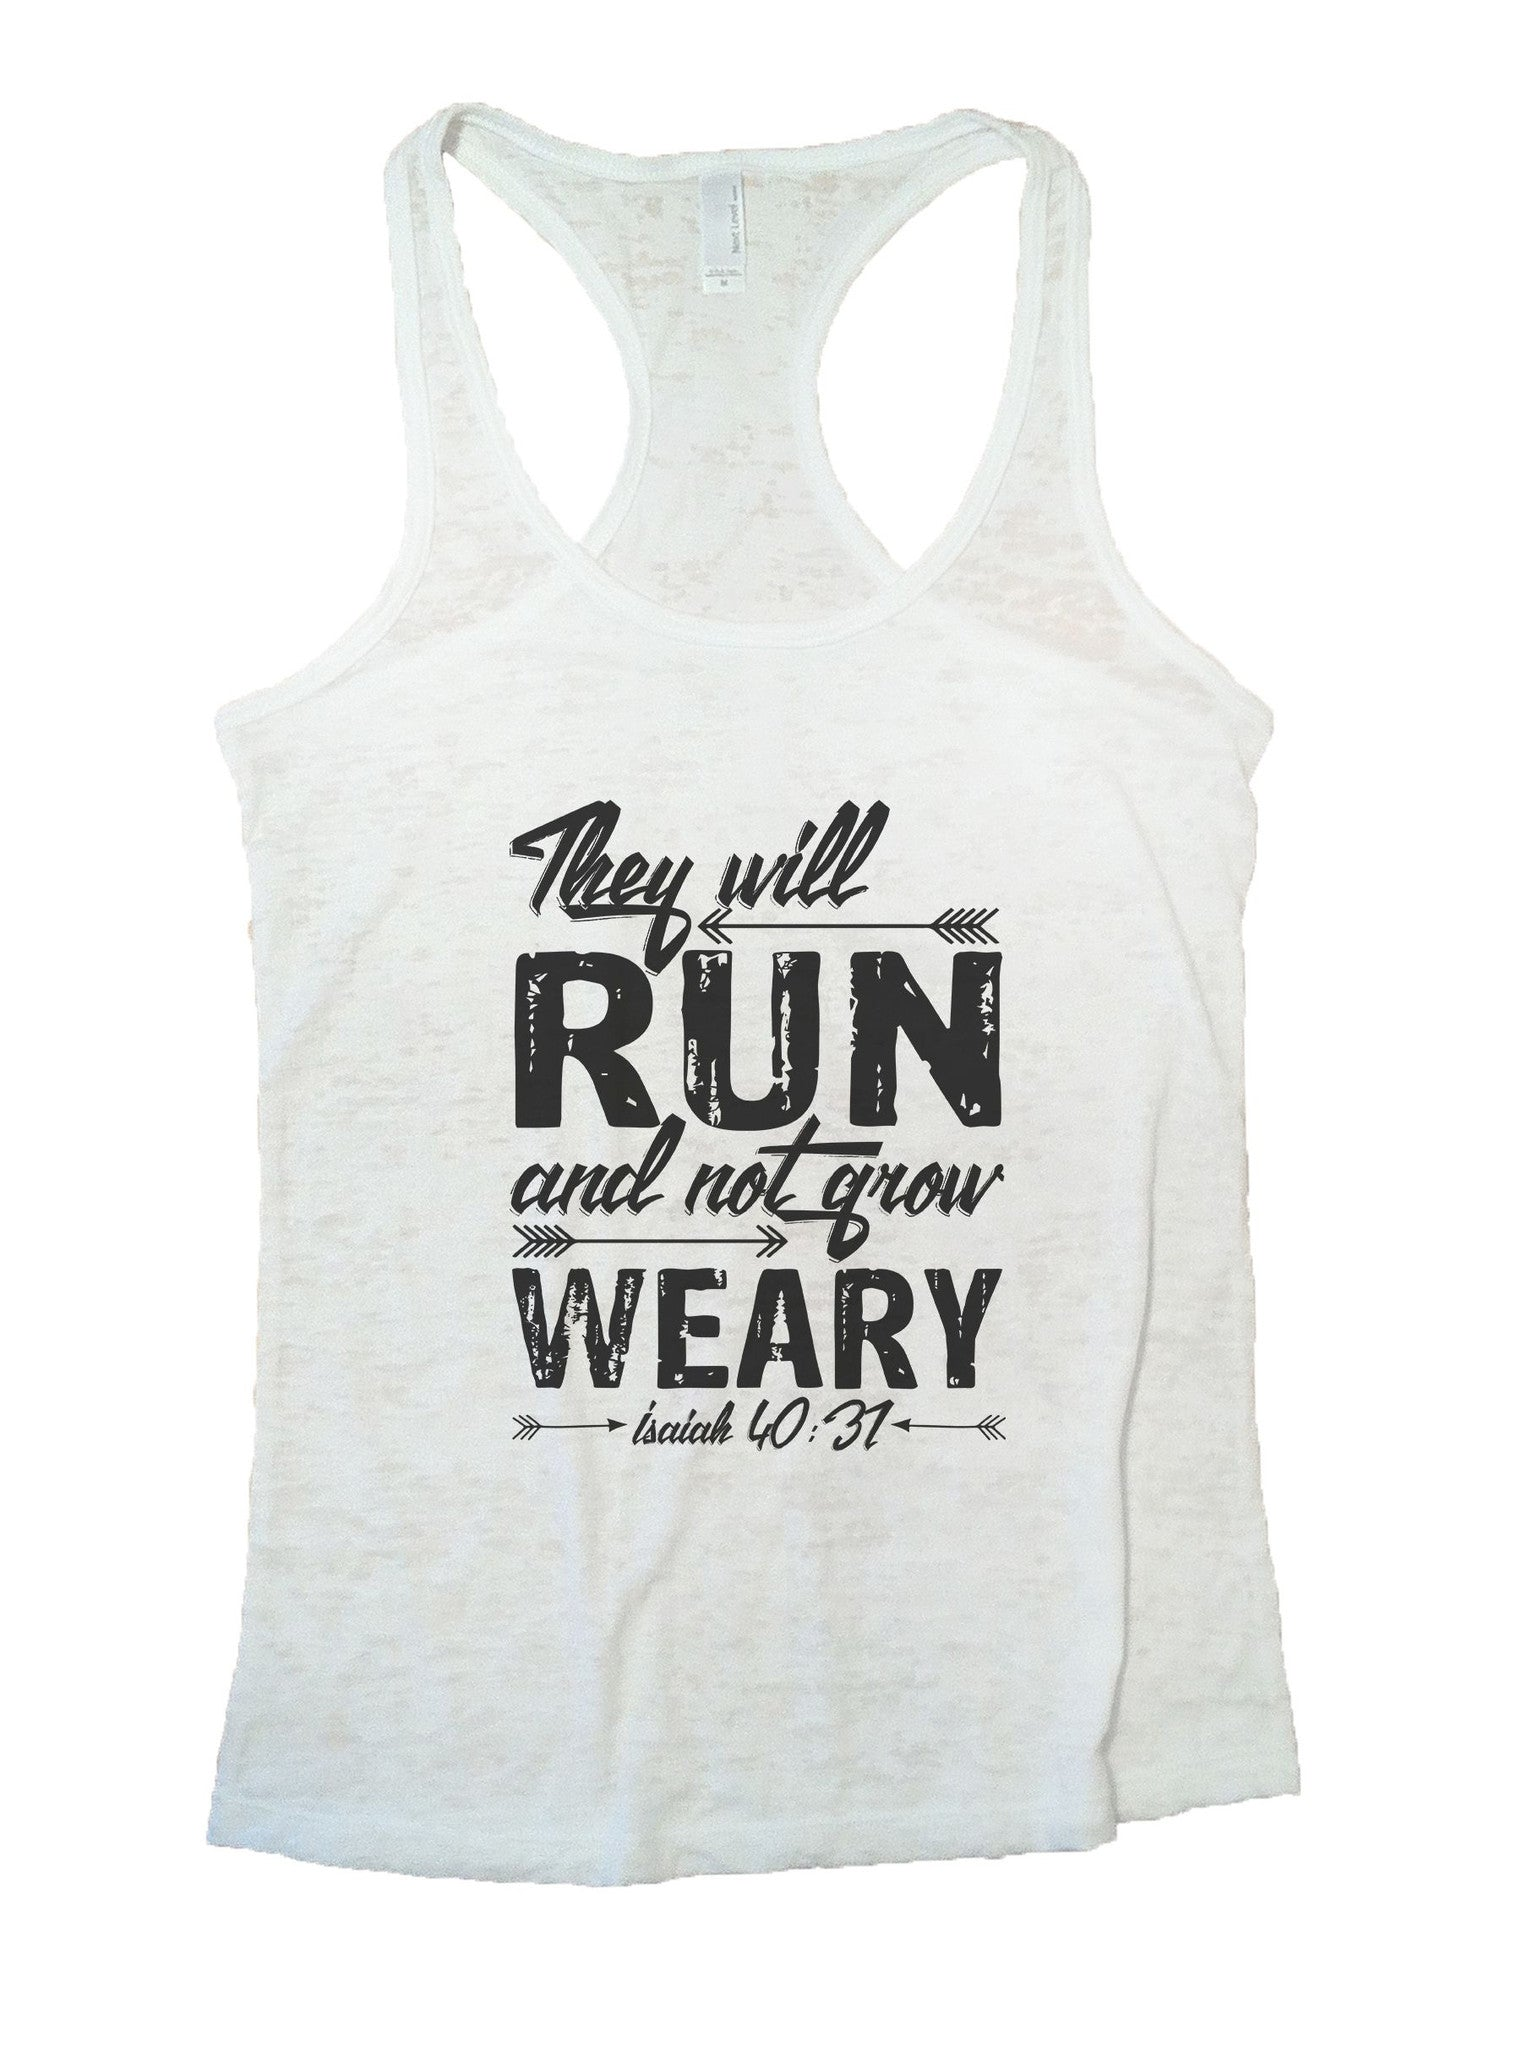 They Will Run And Not Grow Weary Isaiah 40:31 Burnout Tank Top By BurnoutTankTops.com - 1075 - Funny Shirts Tank Tops Burnouts and Triblends  - 6